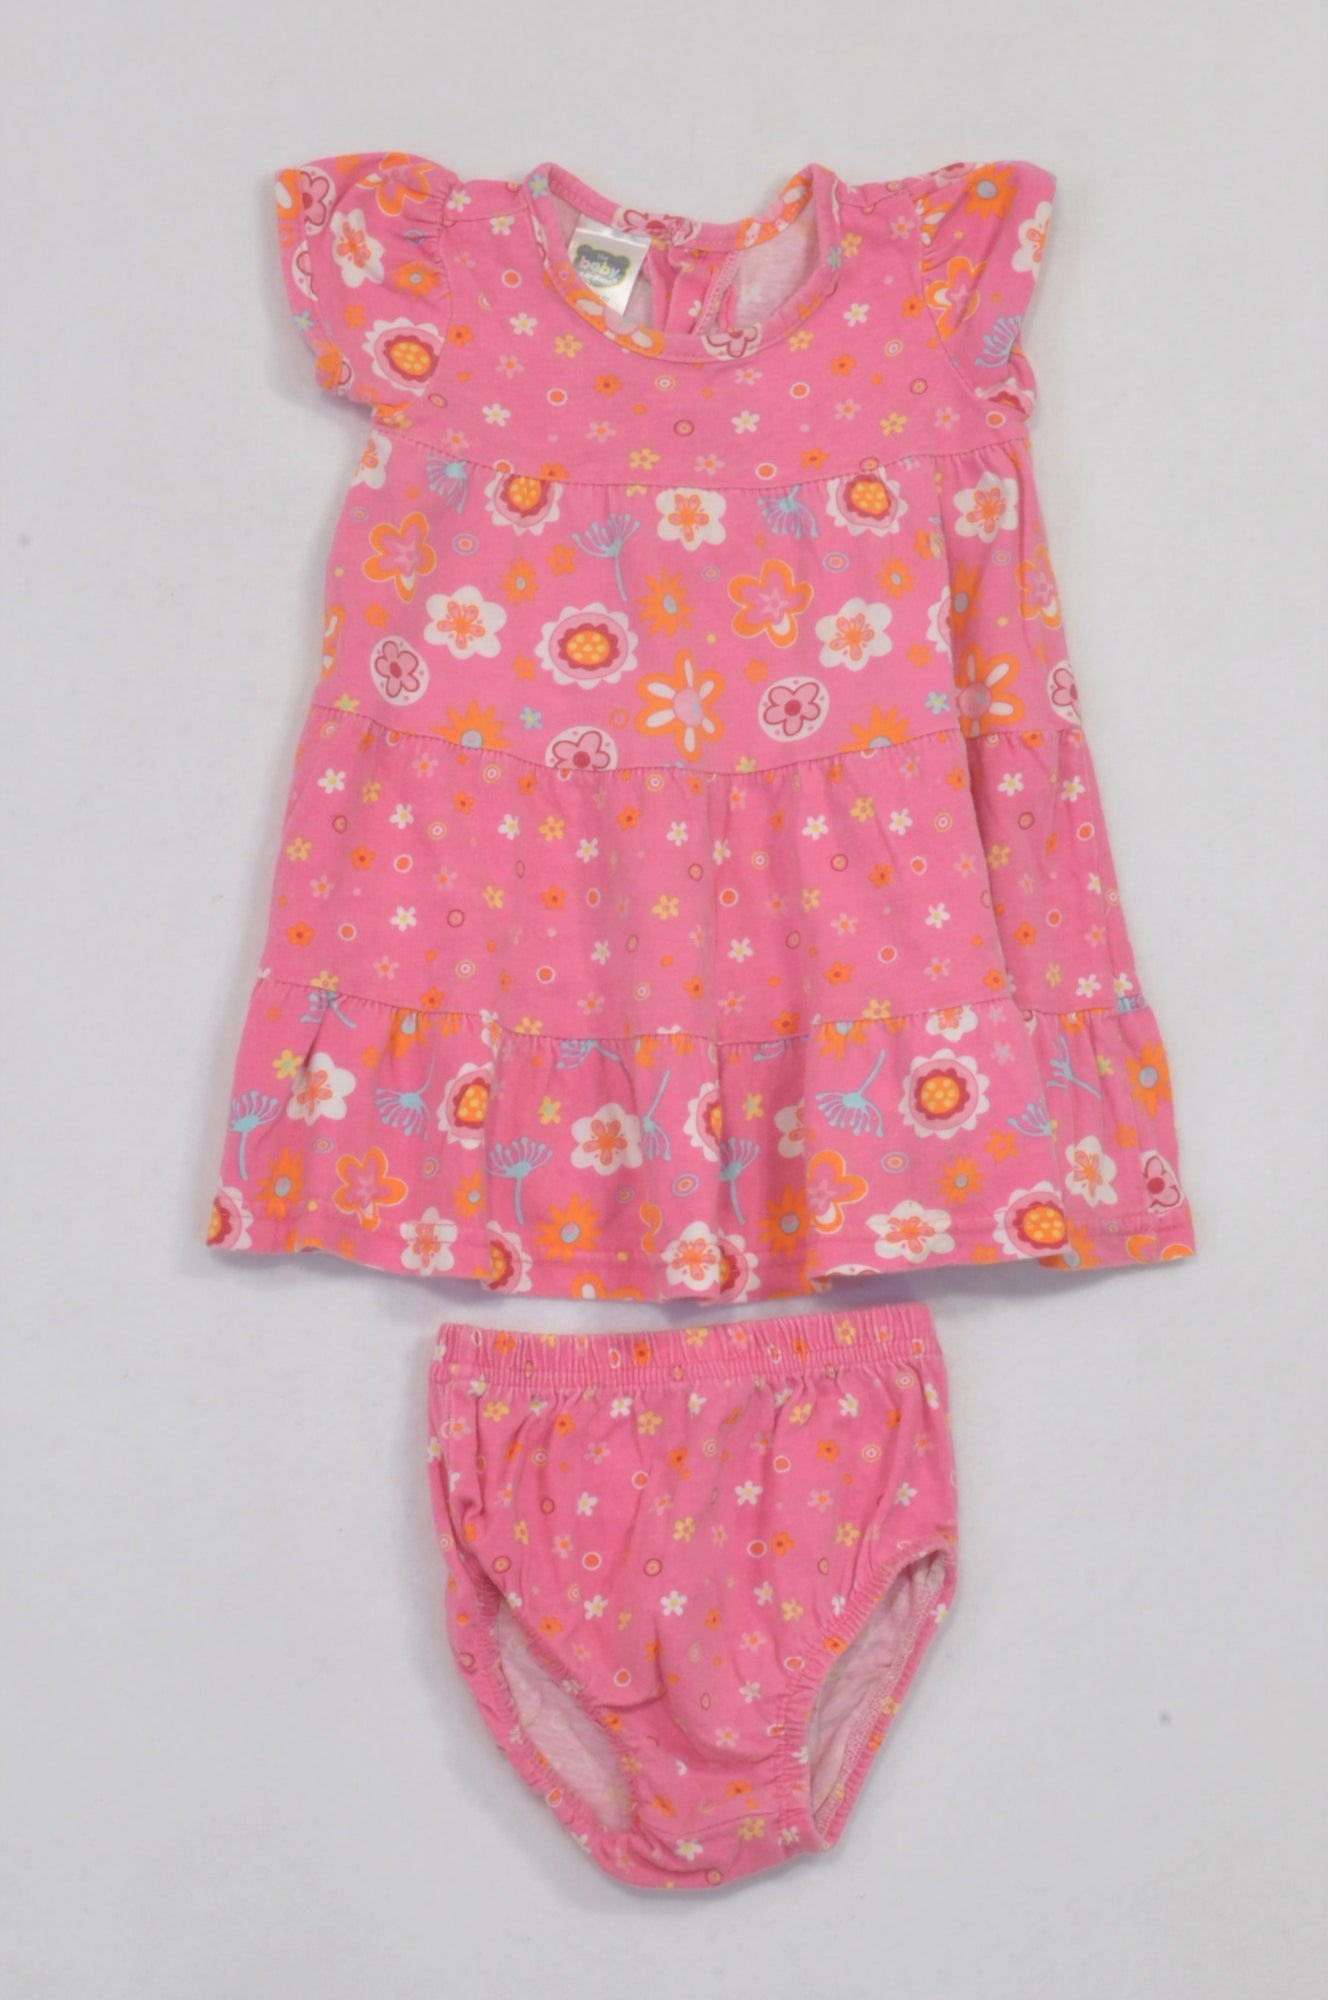 Ackermans Pink Assorted Flower Top & Bloomers Outfit Girls 0-3 months